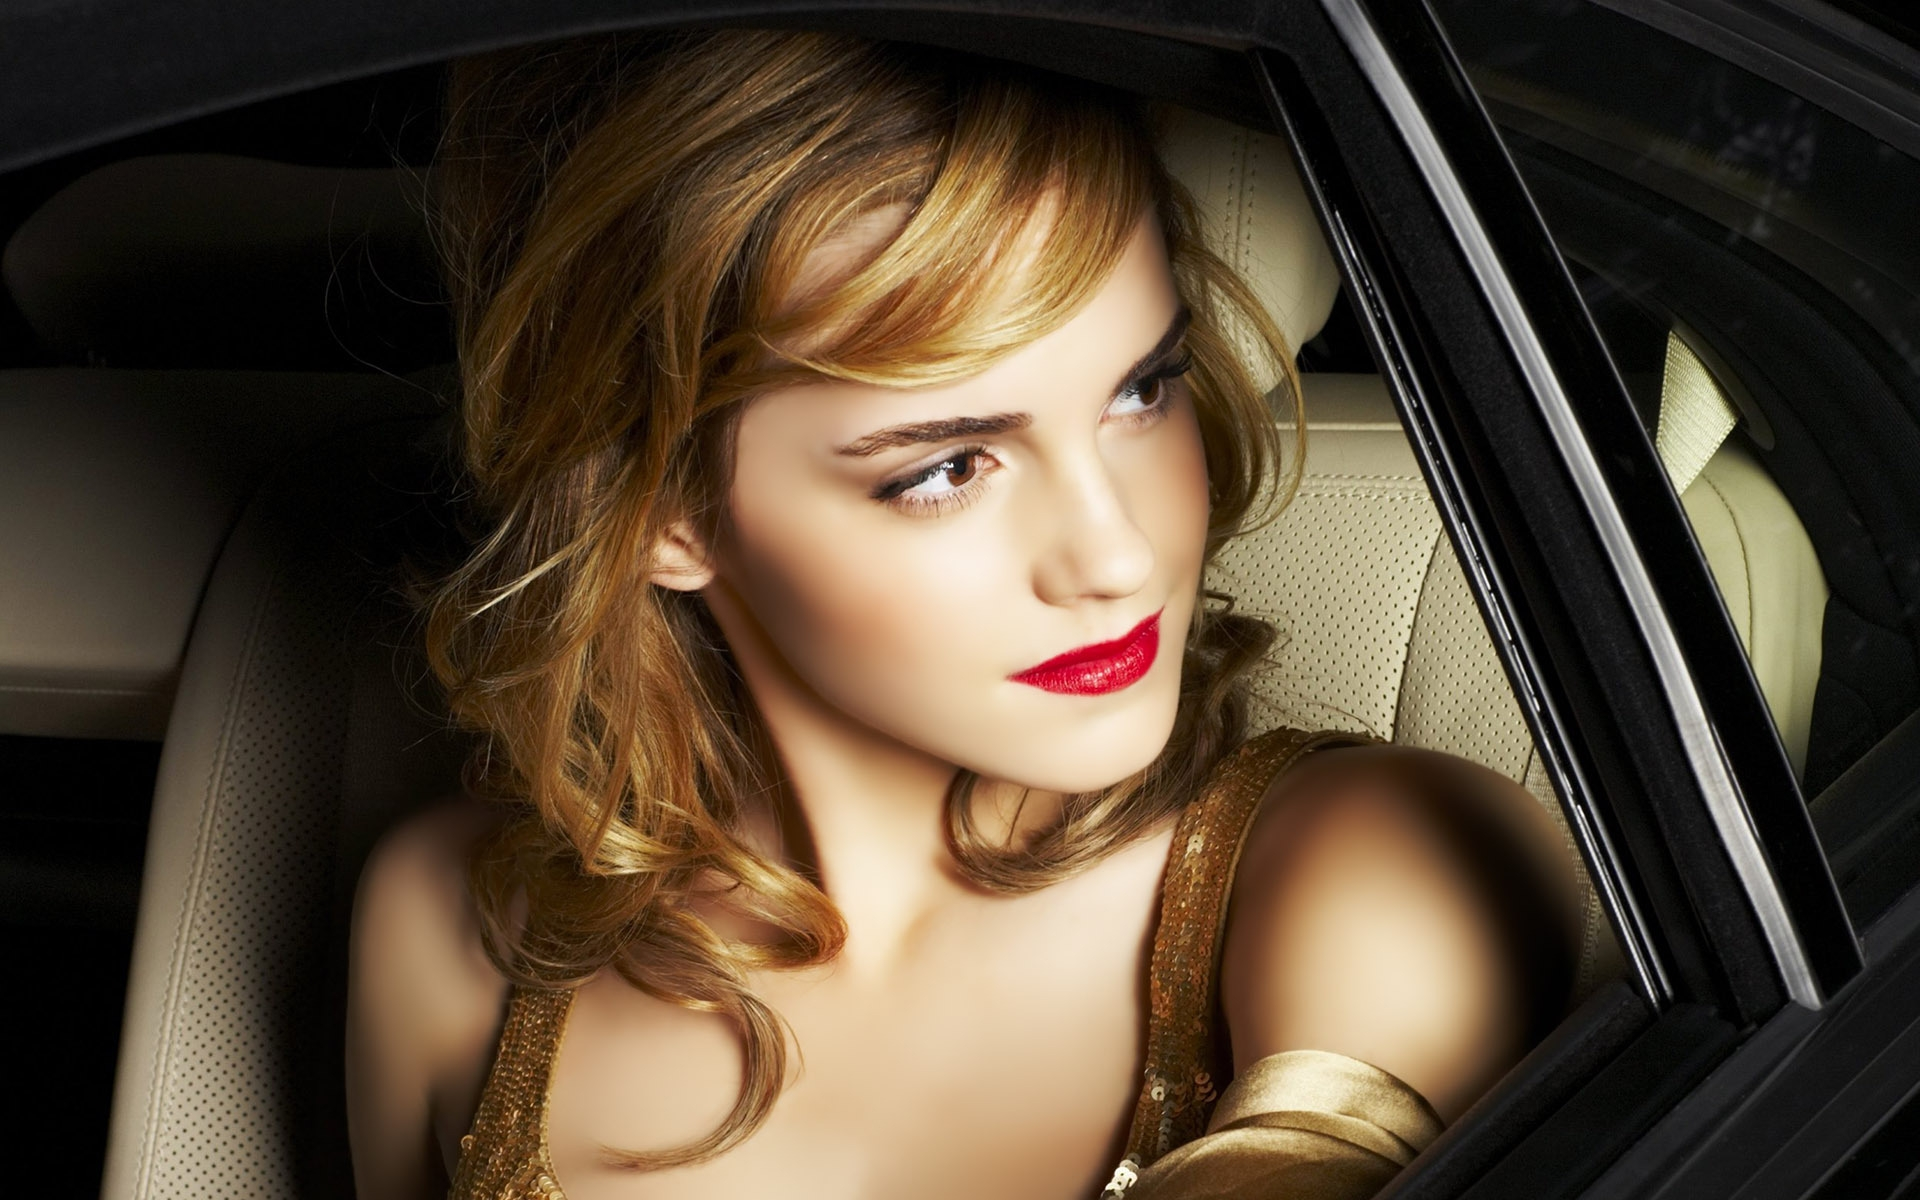 Emma Watson for 1920 x 1200 widescreen resolution